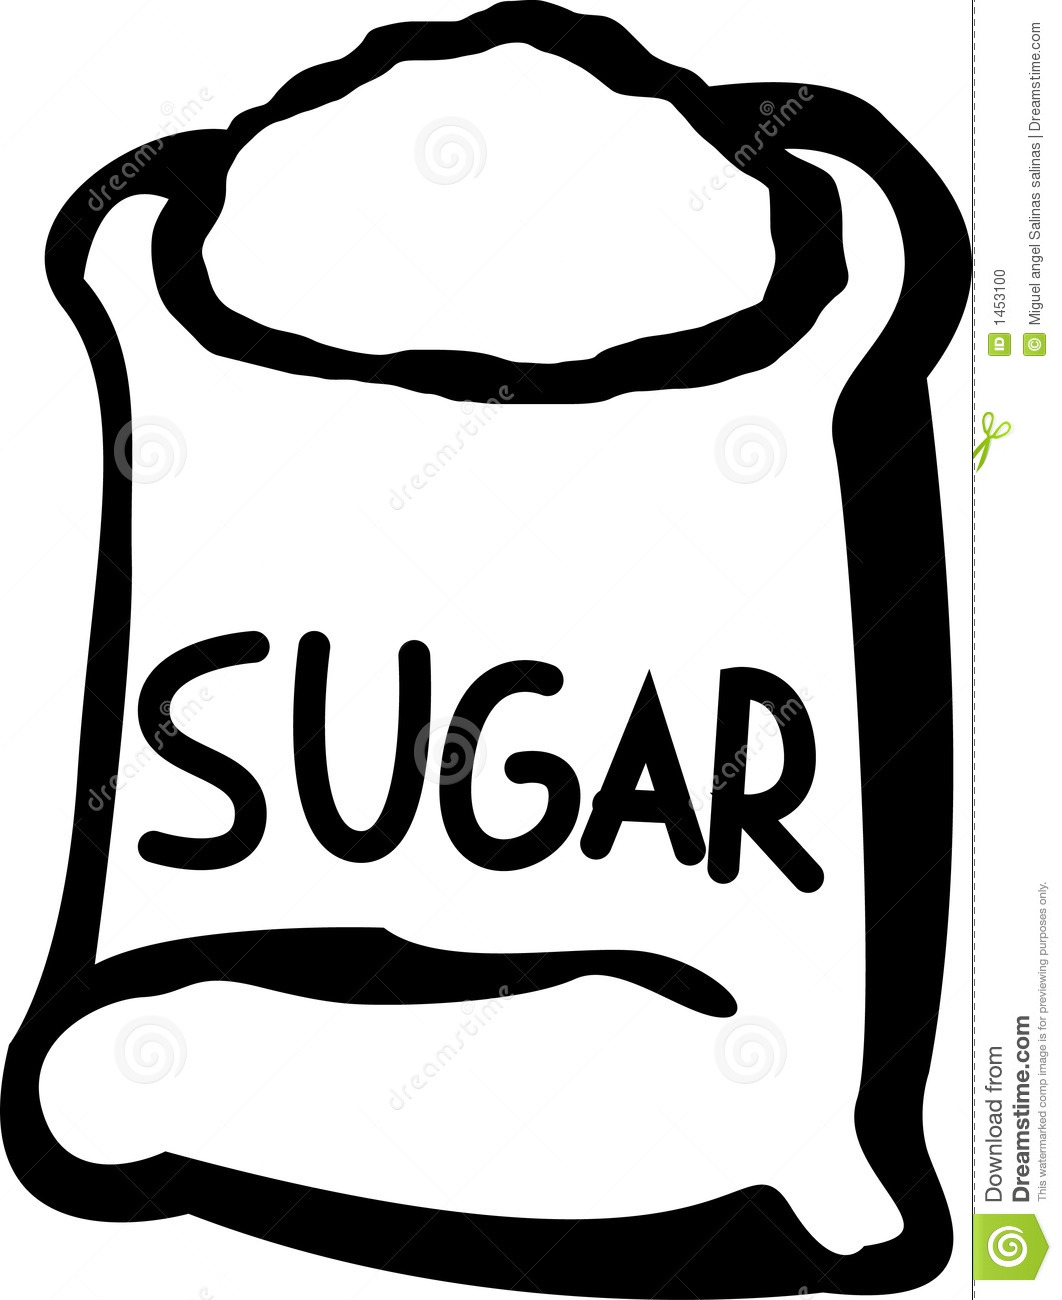 Sugar clipart #10, Download drawings